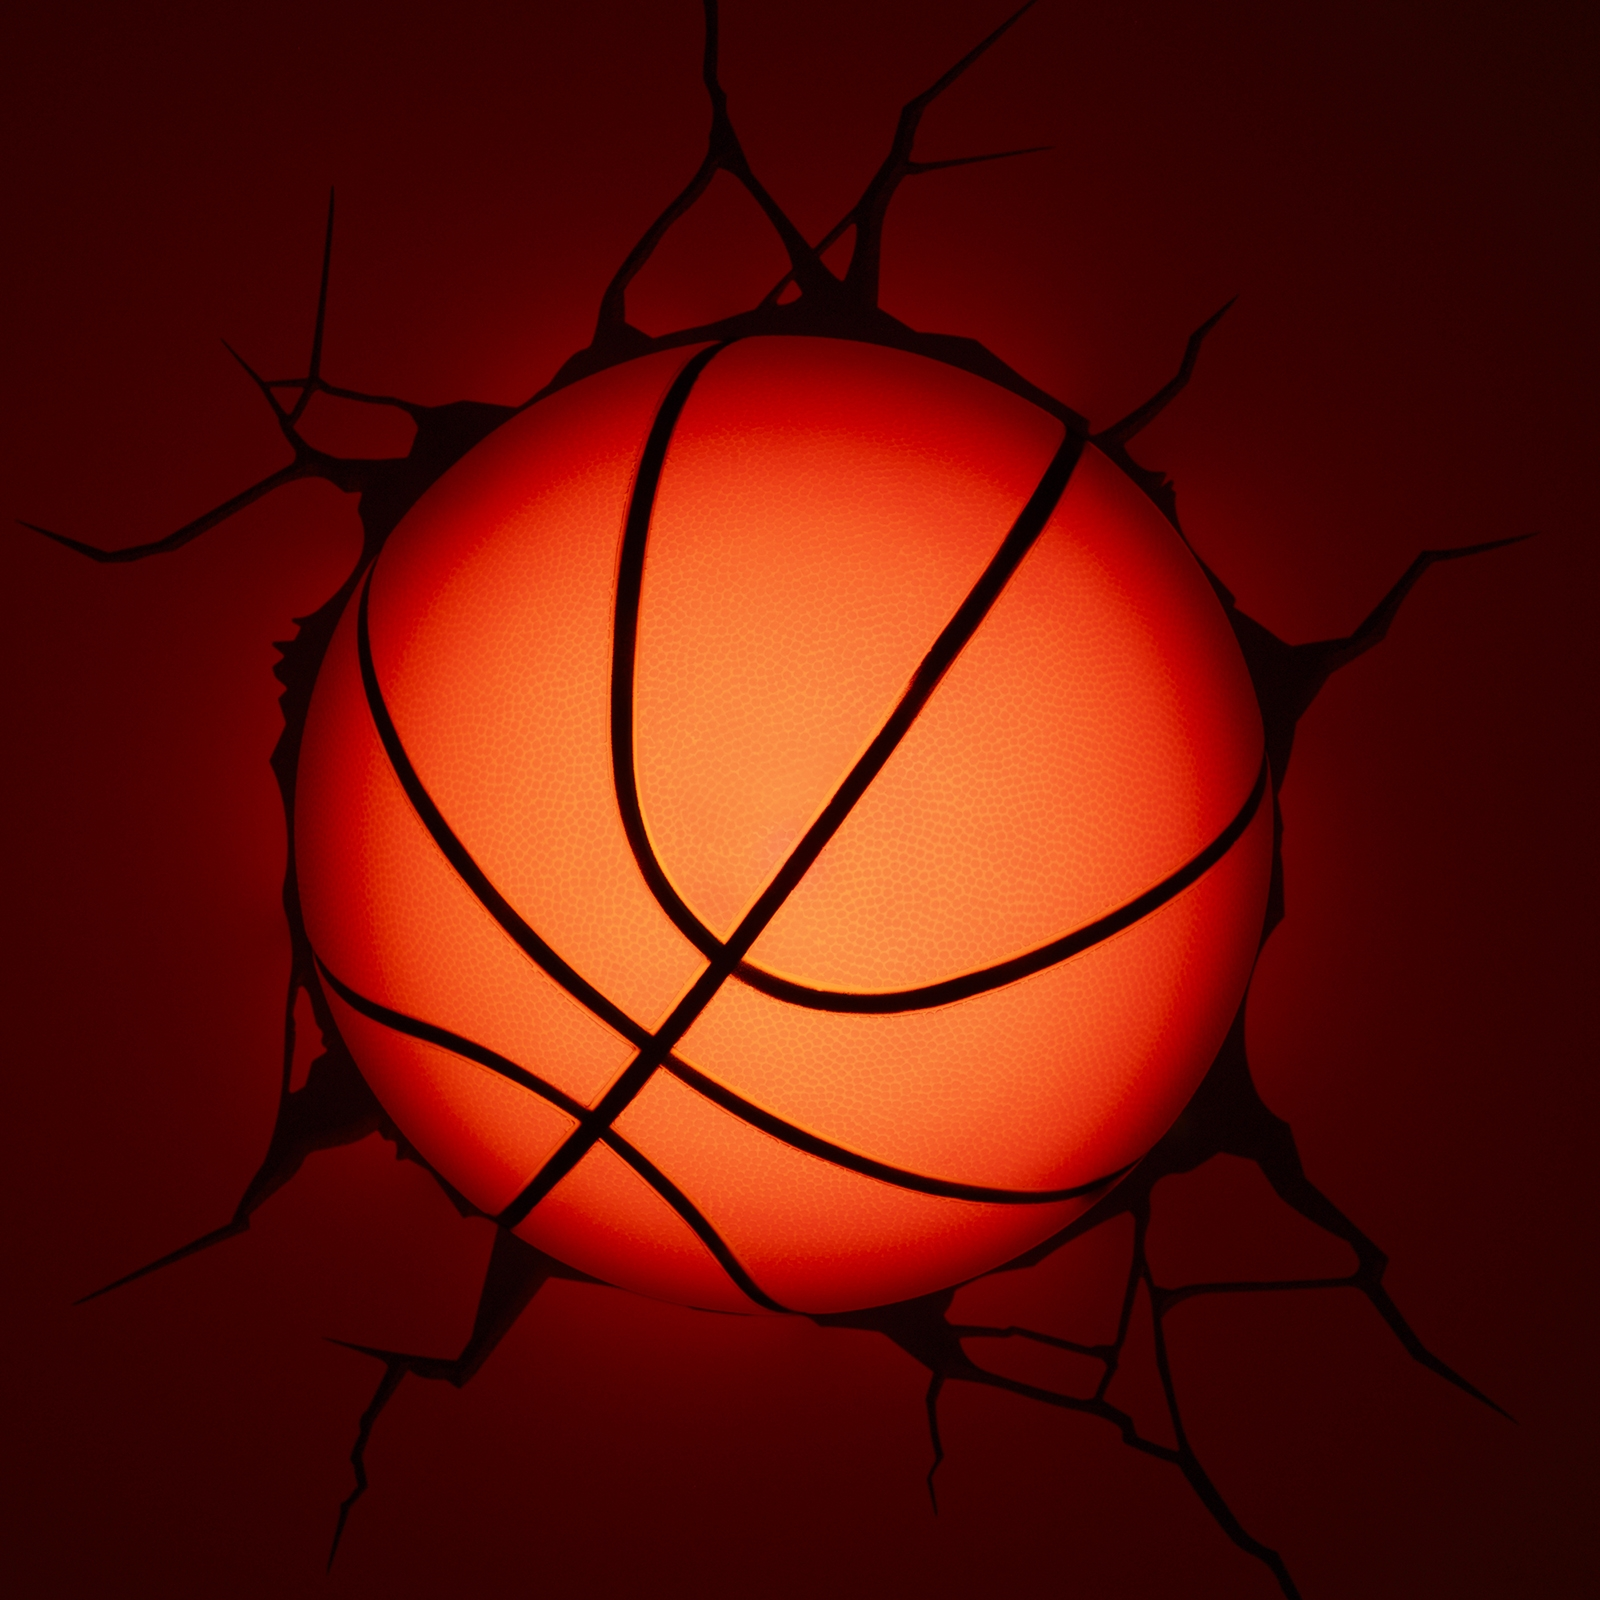 3d Wall Art Night Light Upc 816733001135 Basketball Night Light Upcitemdb